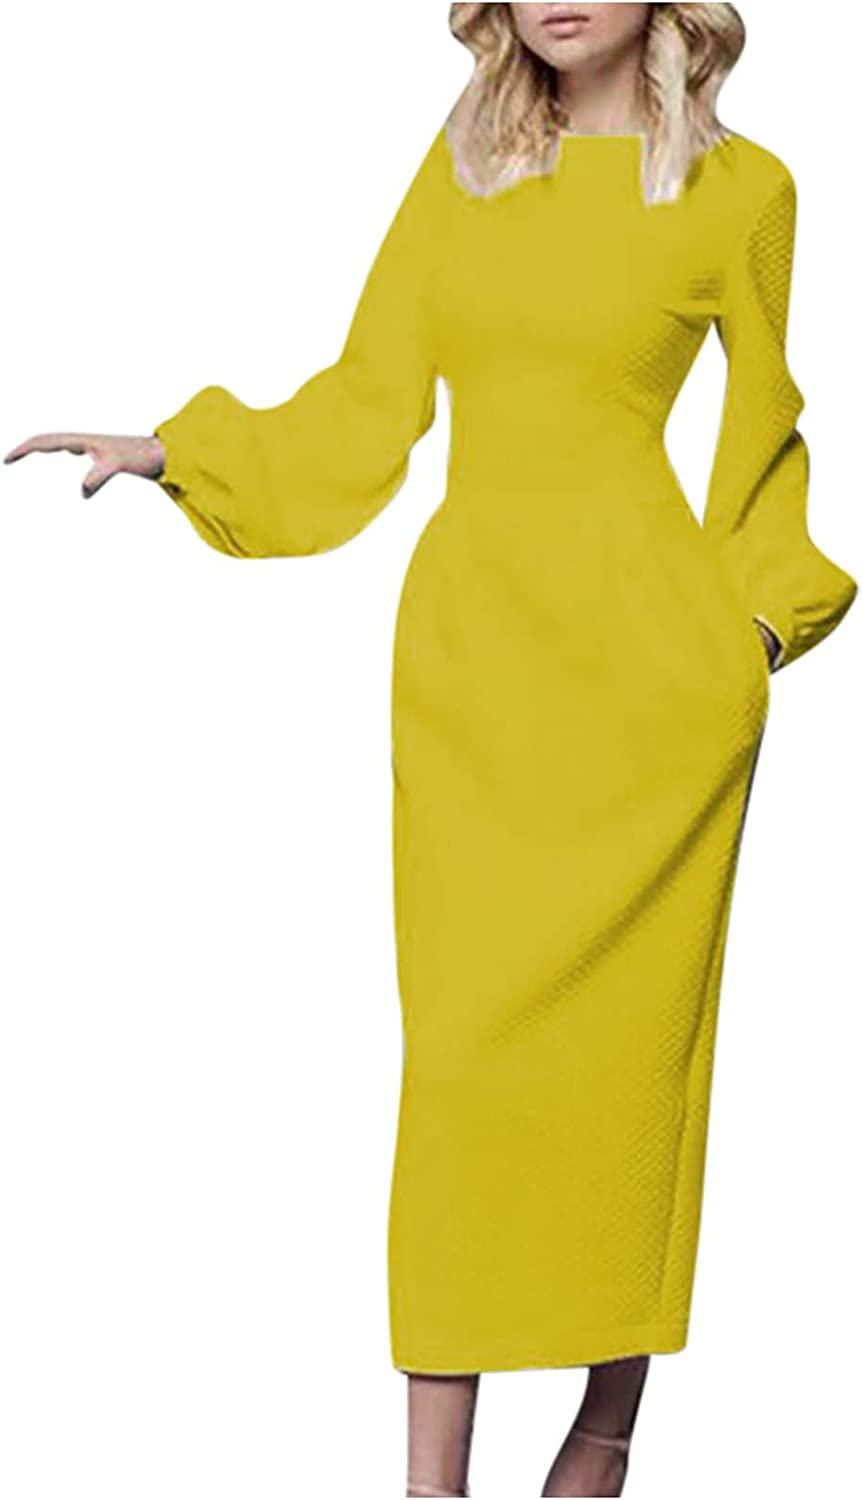 BIrty Autumn Womens Loose Casual Round Neck Solid Color Short Sleeve Long Maxi Dress